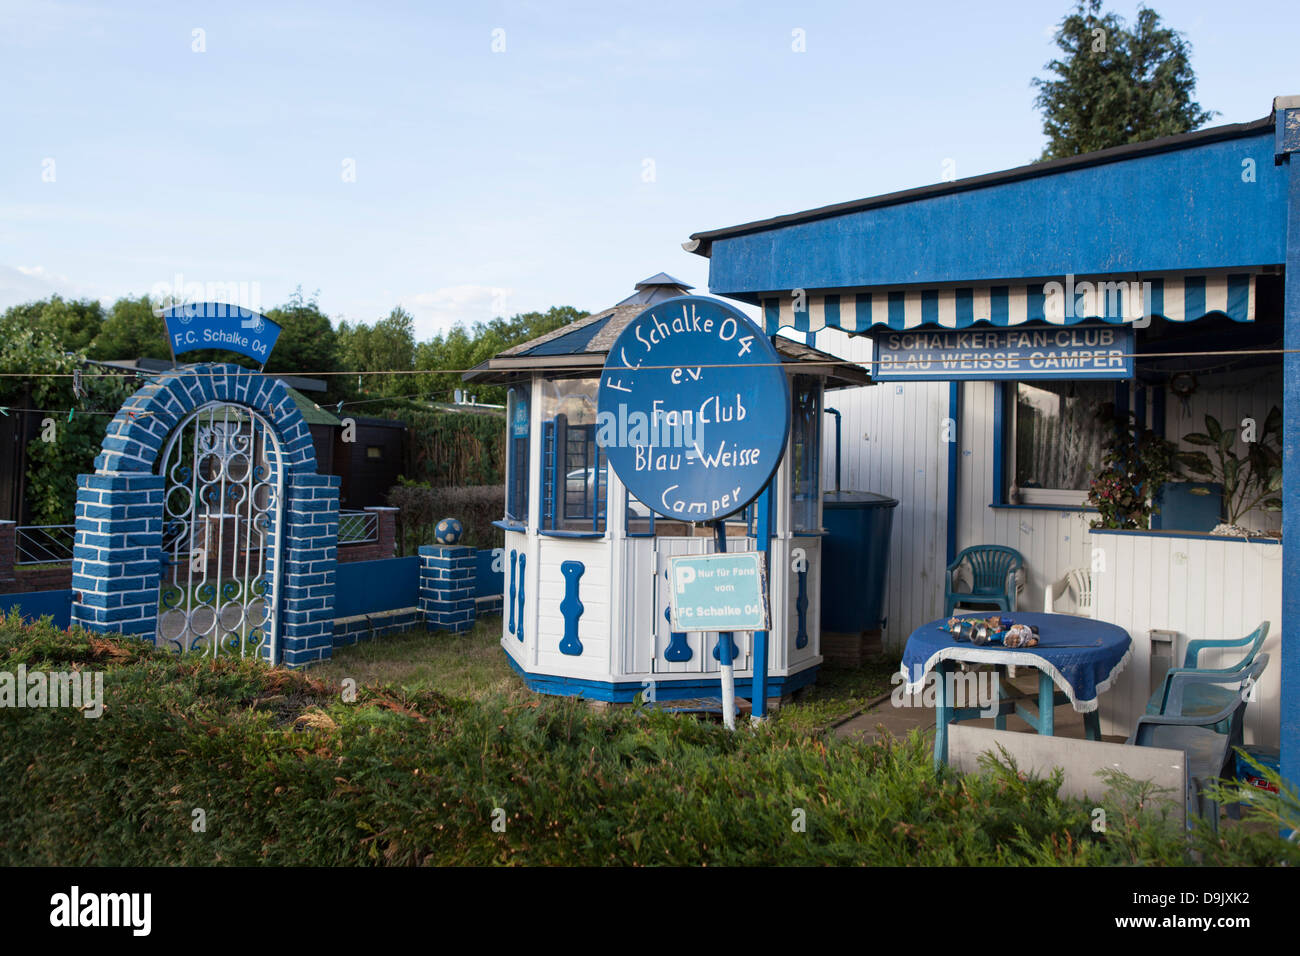 camping haus von schalke 04 fans gemacht stockfoto bild 57579062 alamy. Black Bedroom Furniture Sets. Home Design Ideas